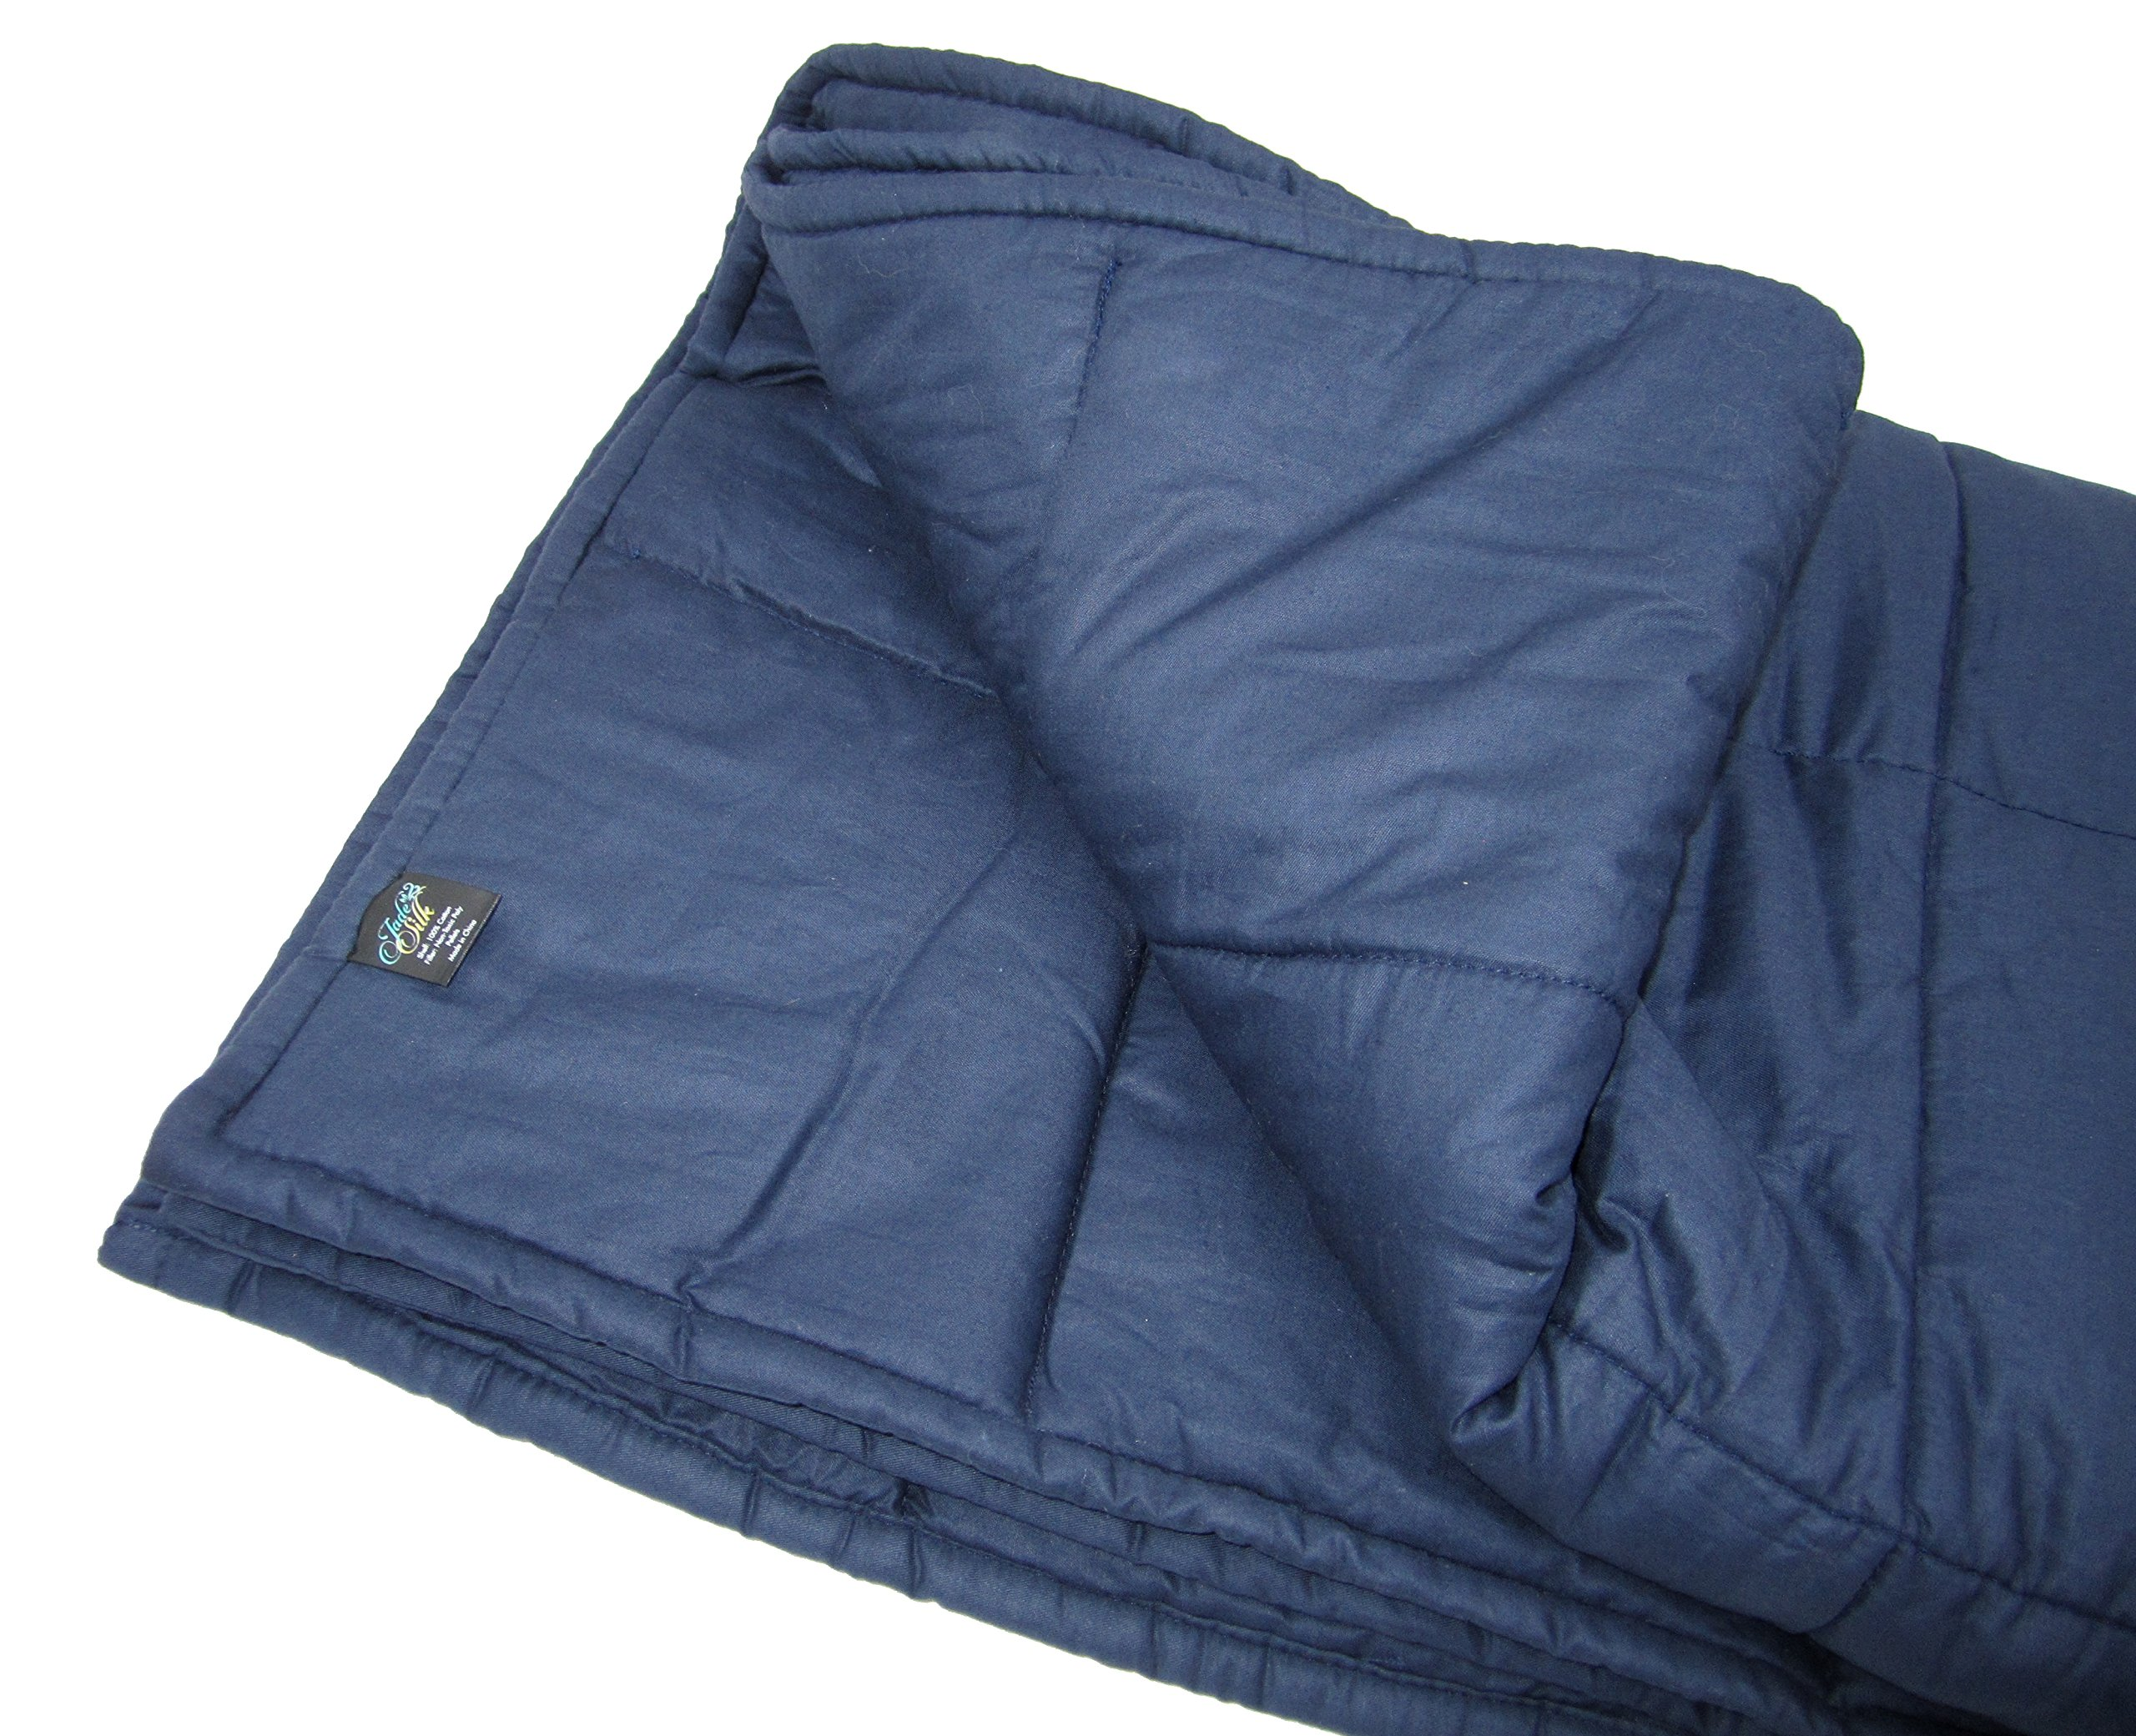 Weighted Blanket for Adults, 10lb, Cotton, Stress and Anxiety Relief, Helps Calm AAD, ADHD, Autism By Jade Silk by Jade Silk (Image #3)